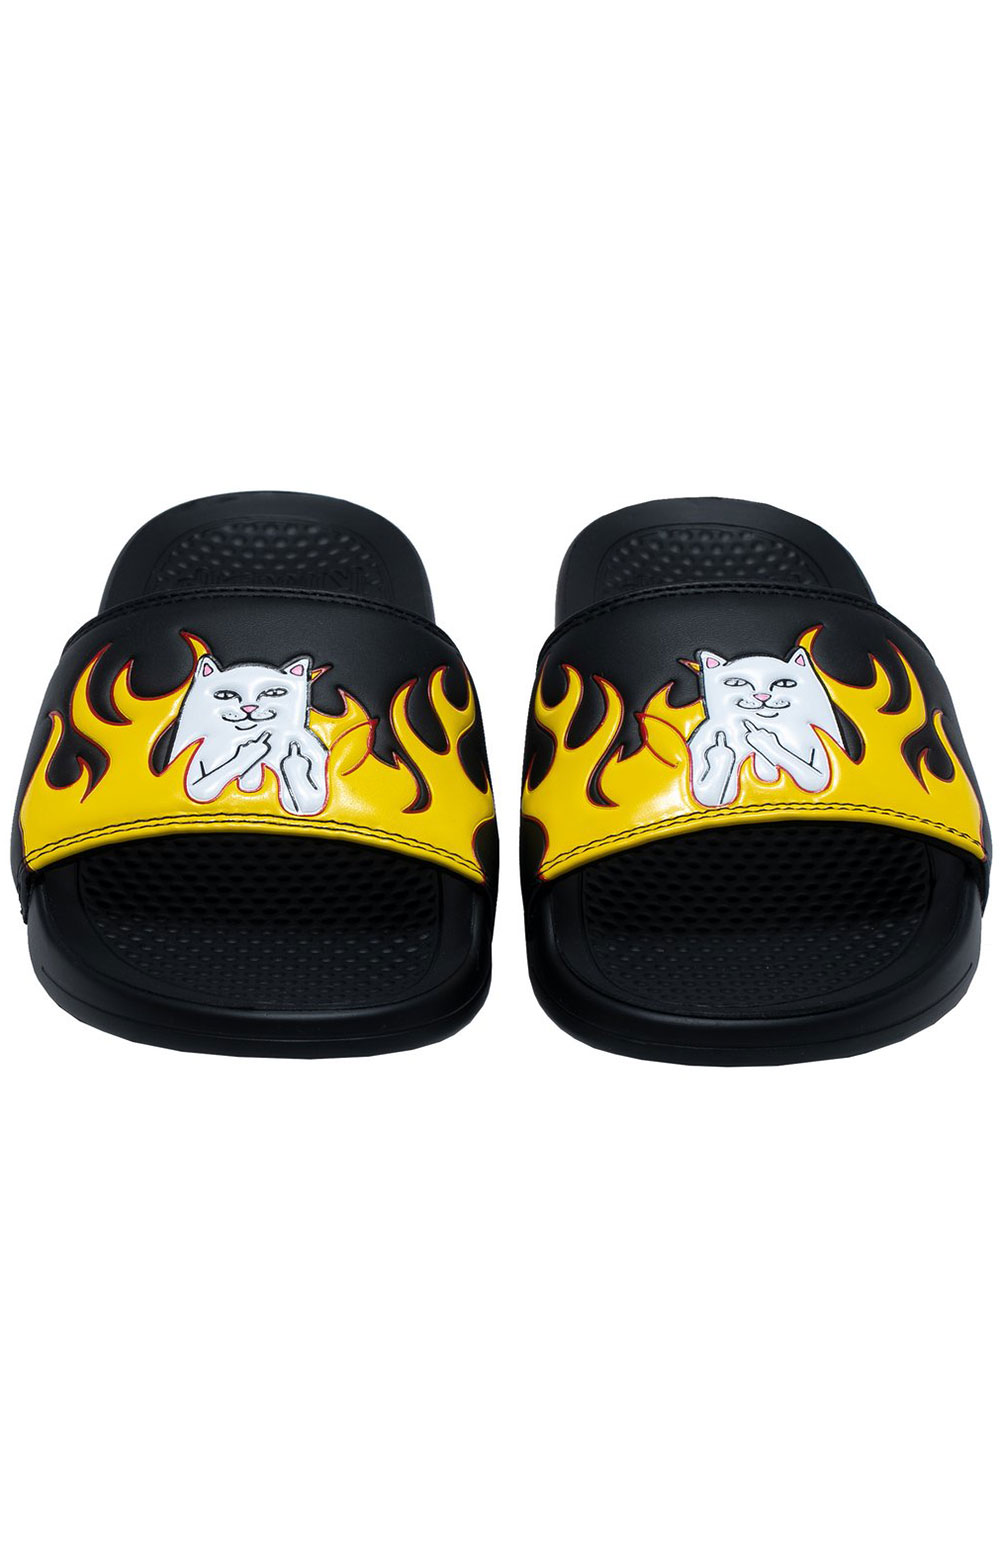 Welcome To Heck Slides - Black Flame